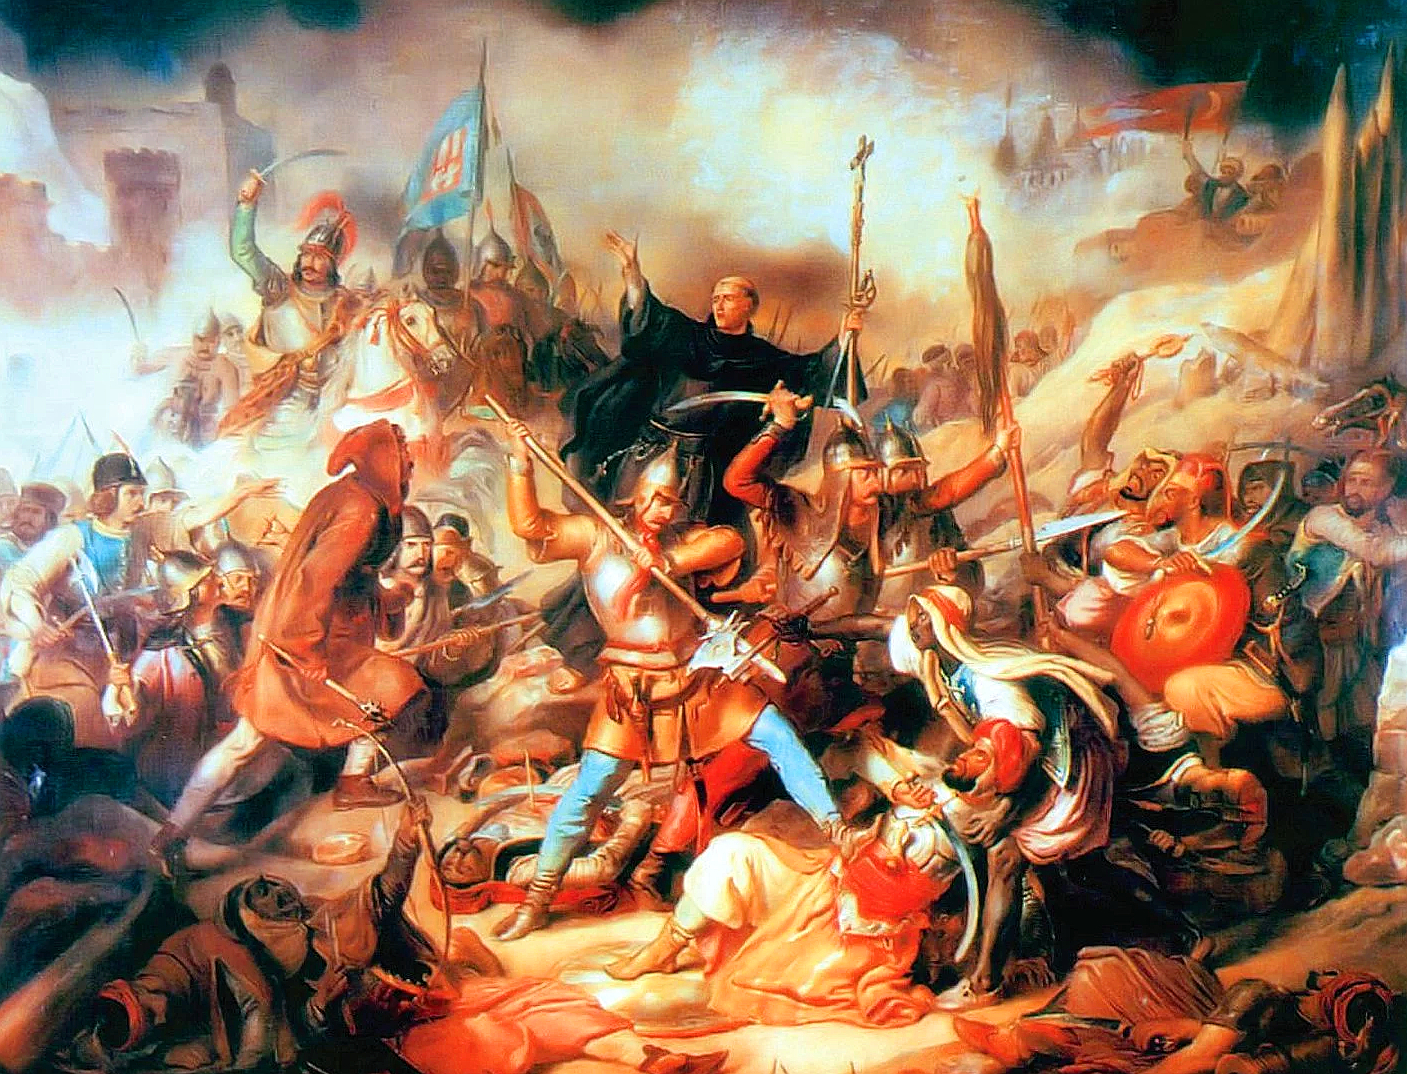 https://upload.wikimedia.org/wikipedia/commons/b/b3/Battle_of_Nandorfehervar.jpg